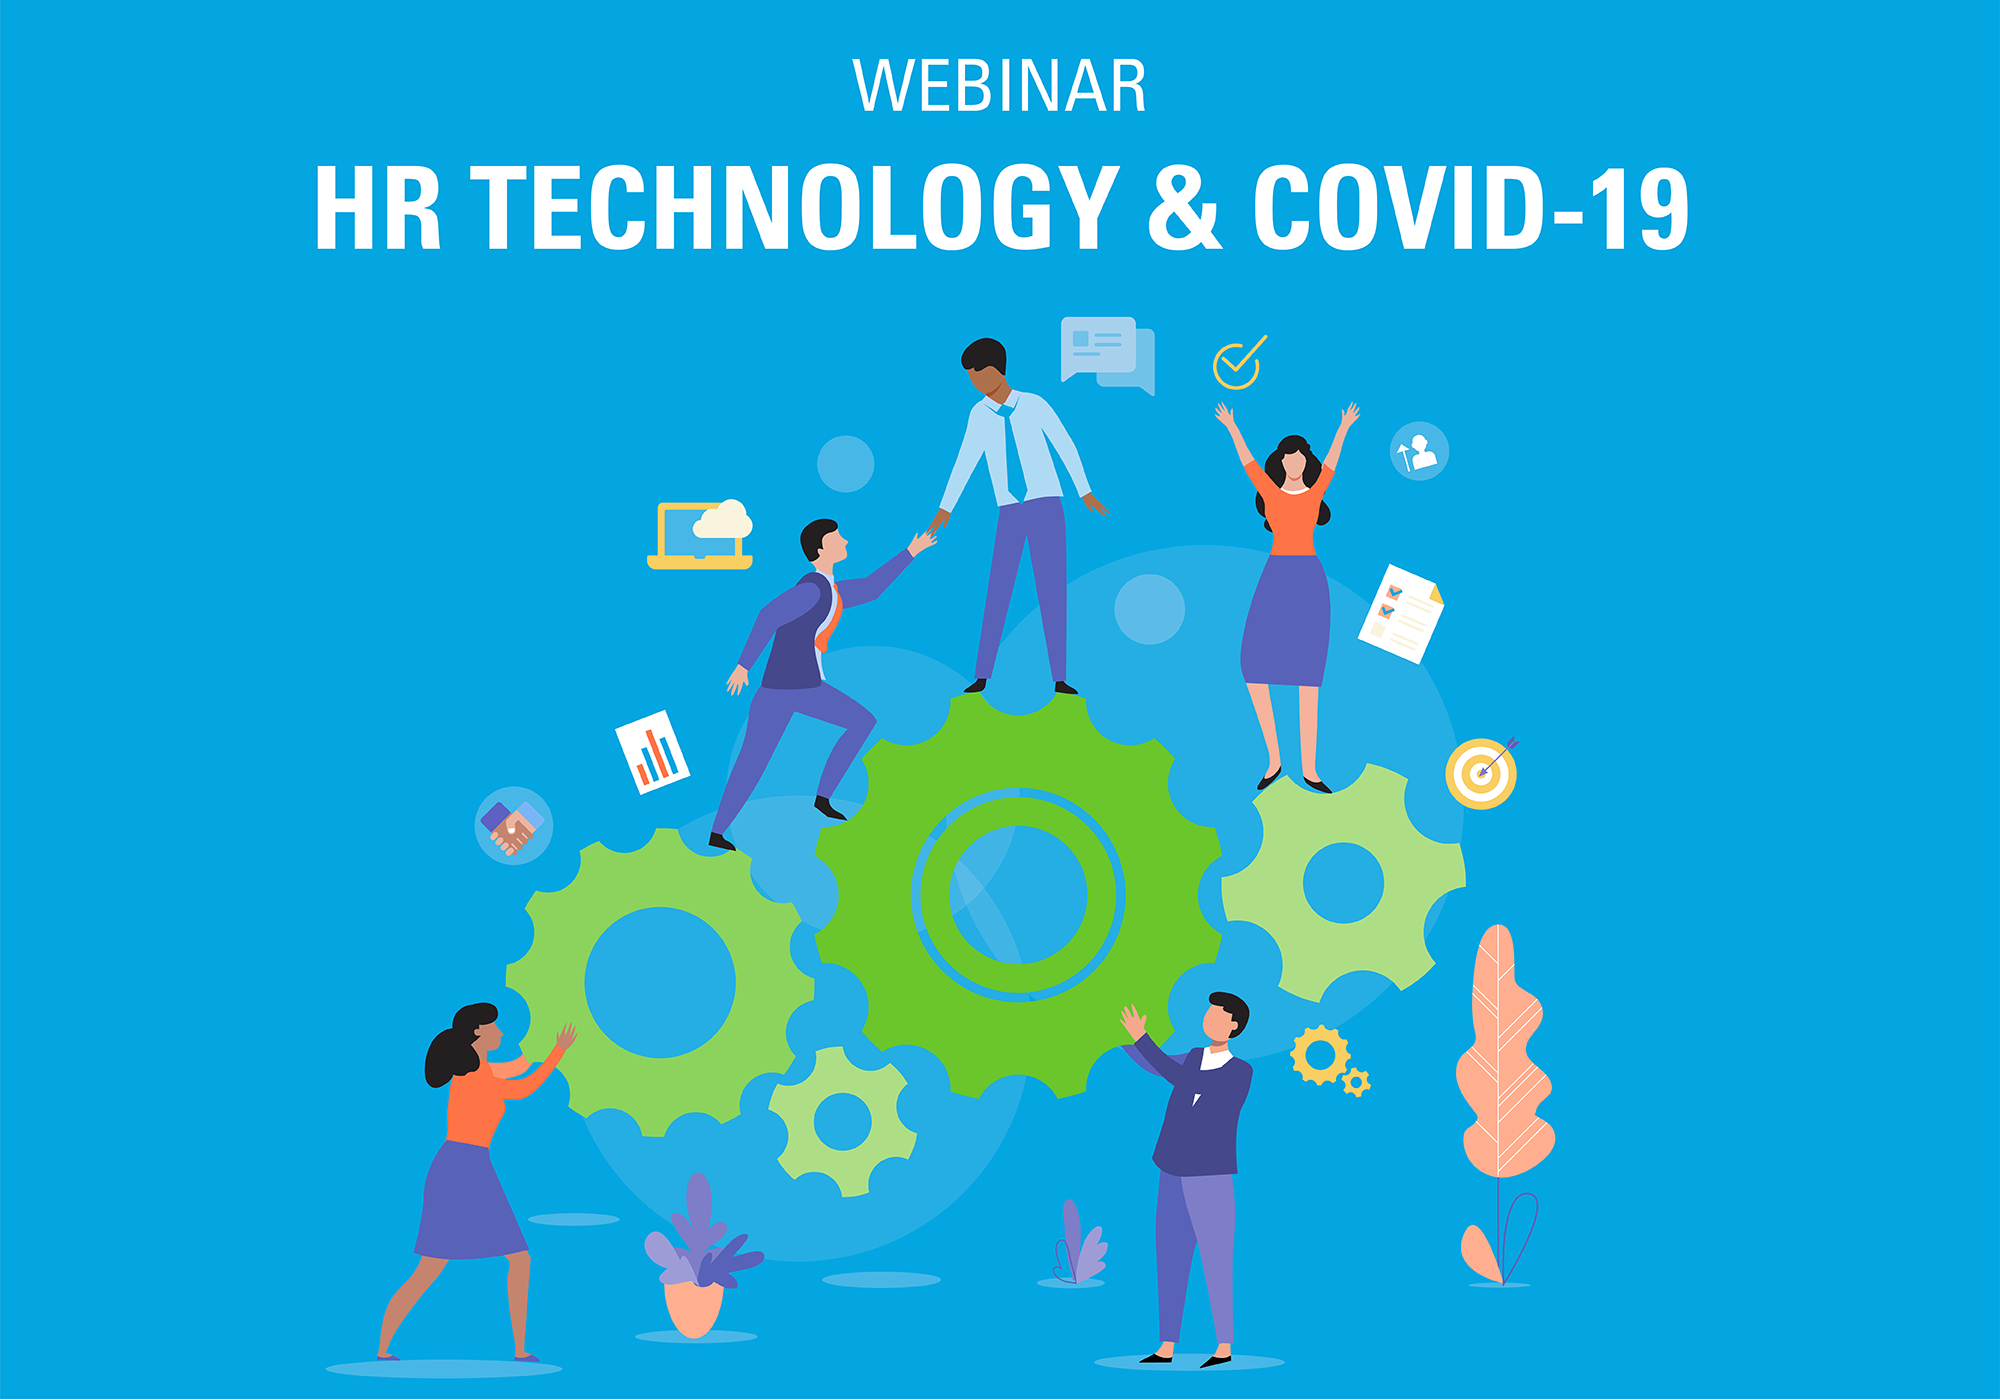 webinar HR technology adn covid-19